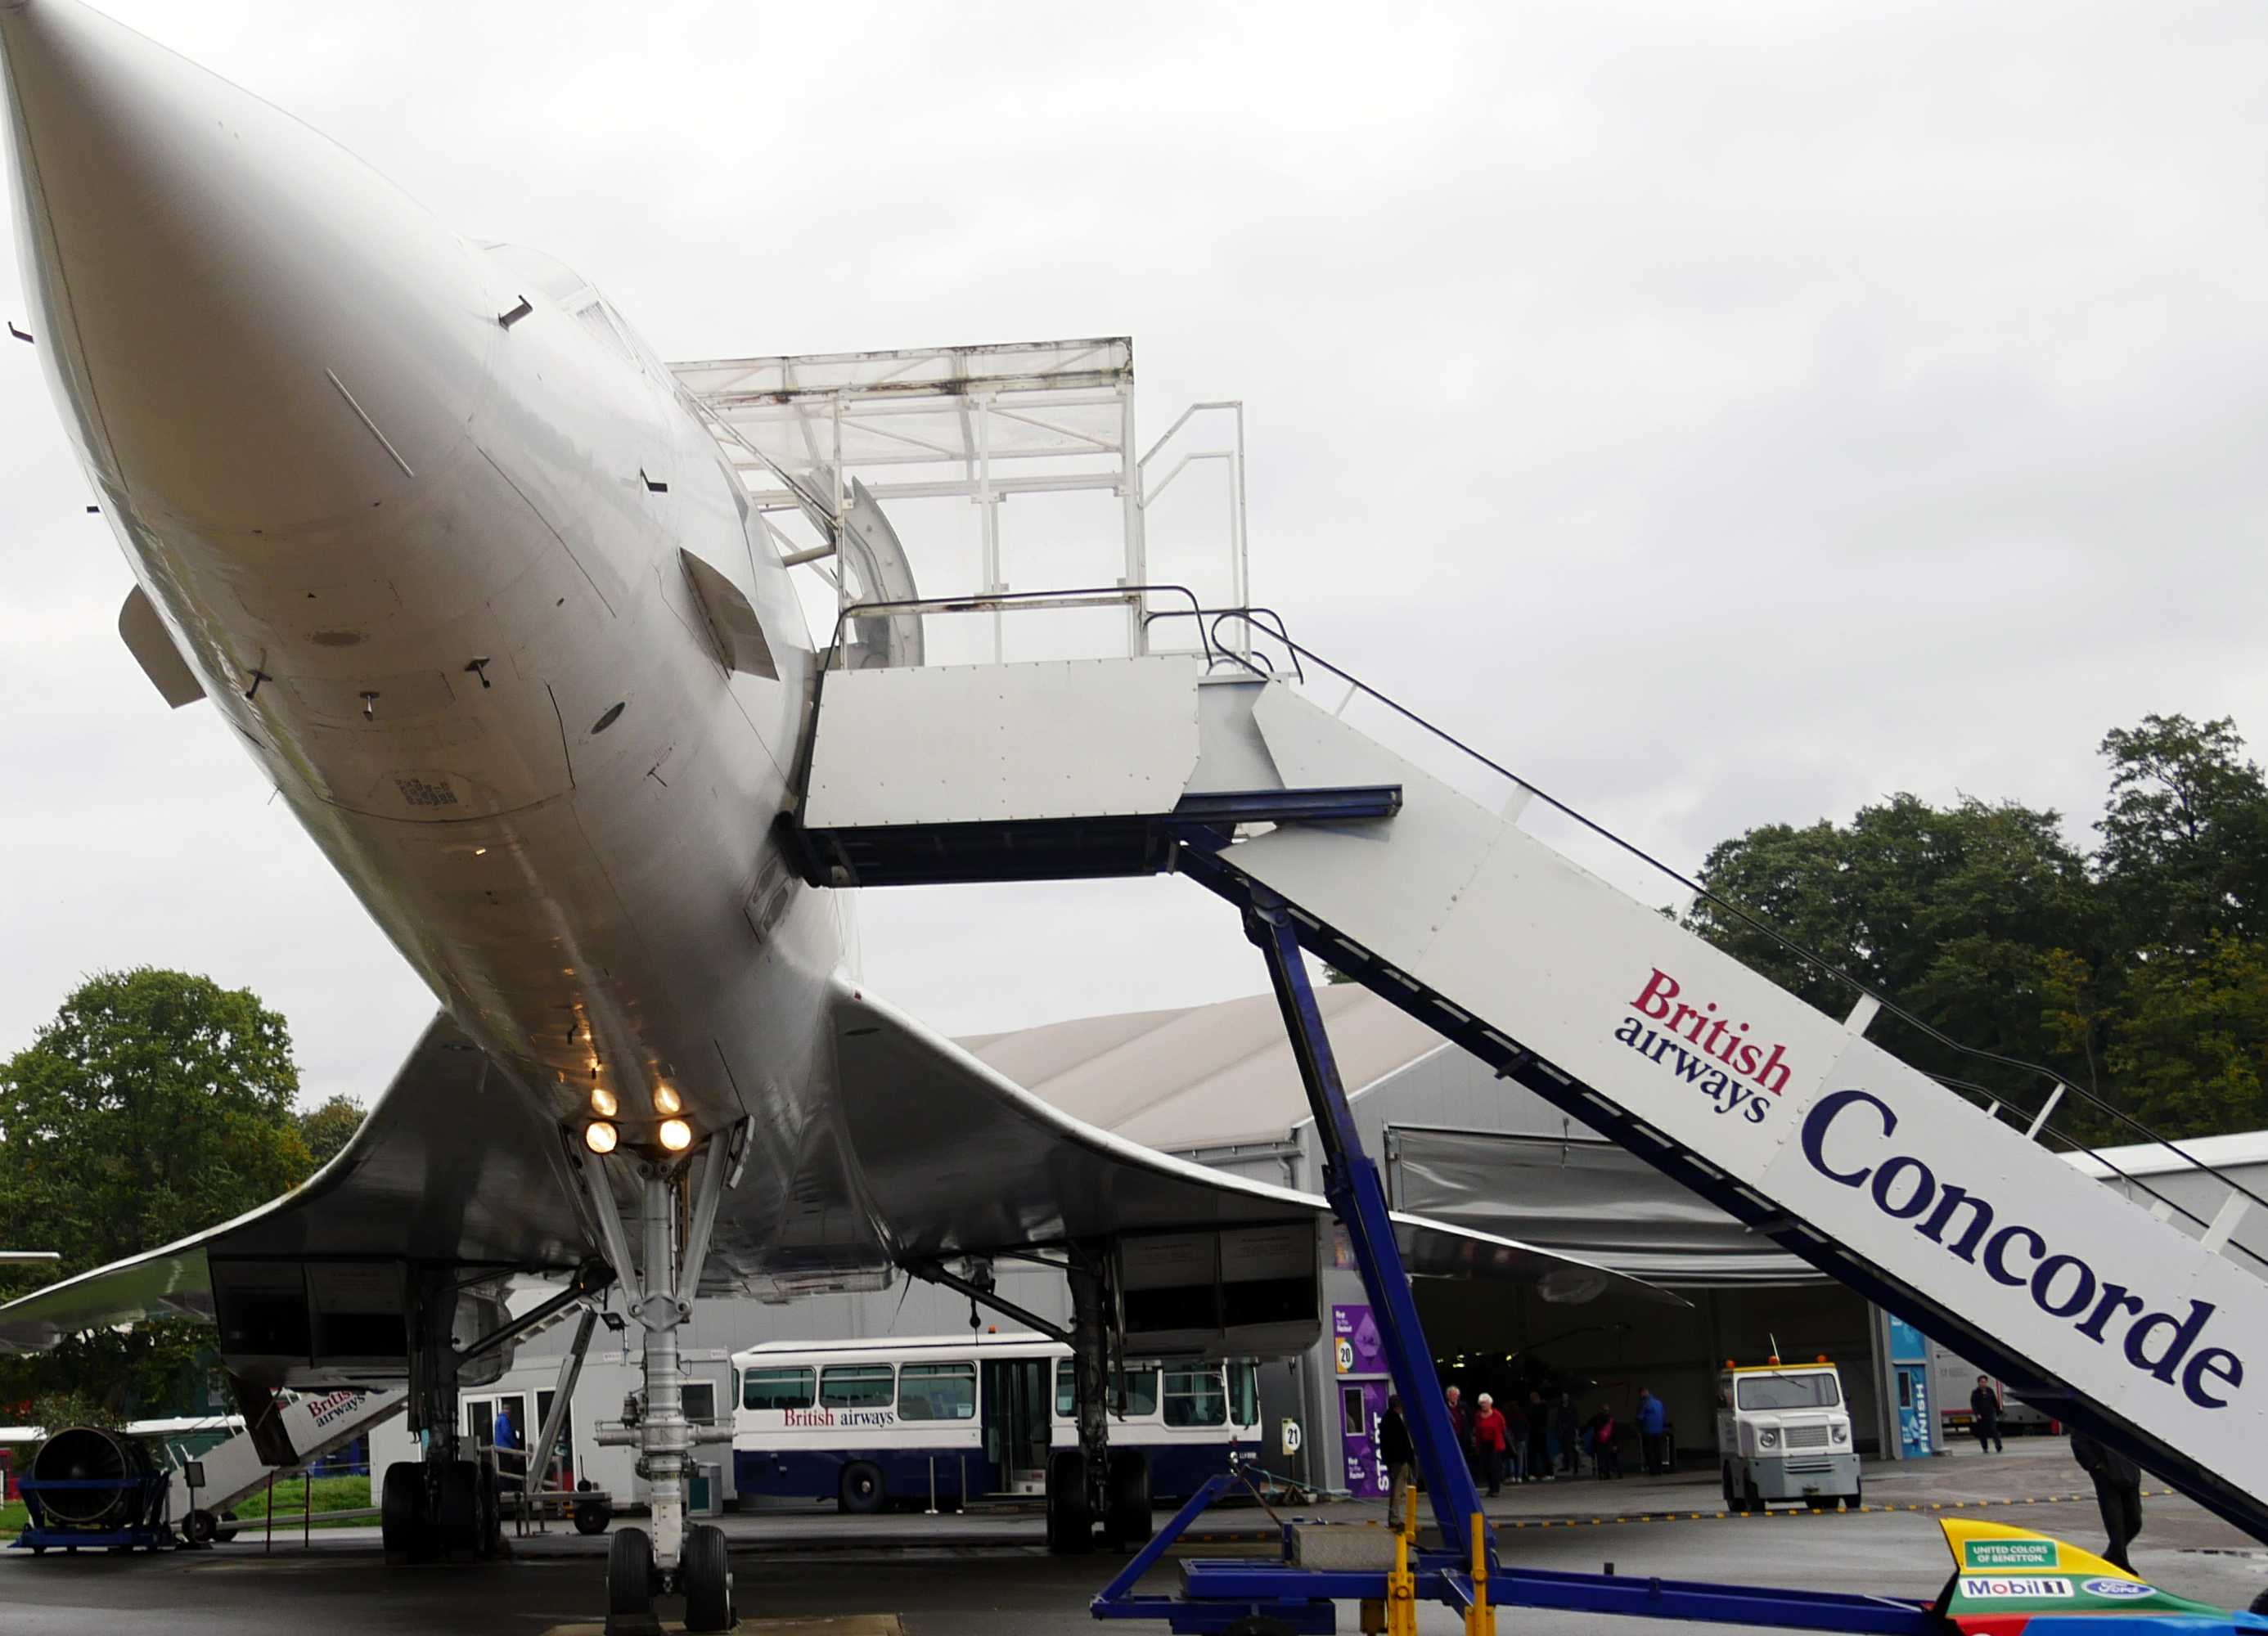 An image of Concorde